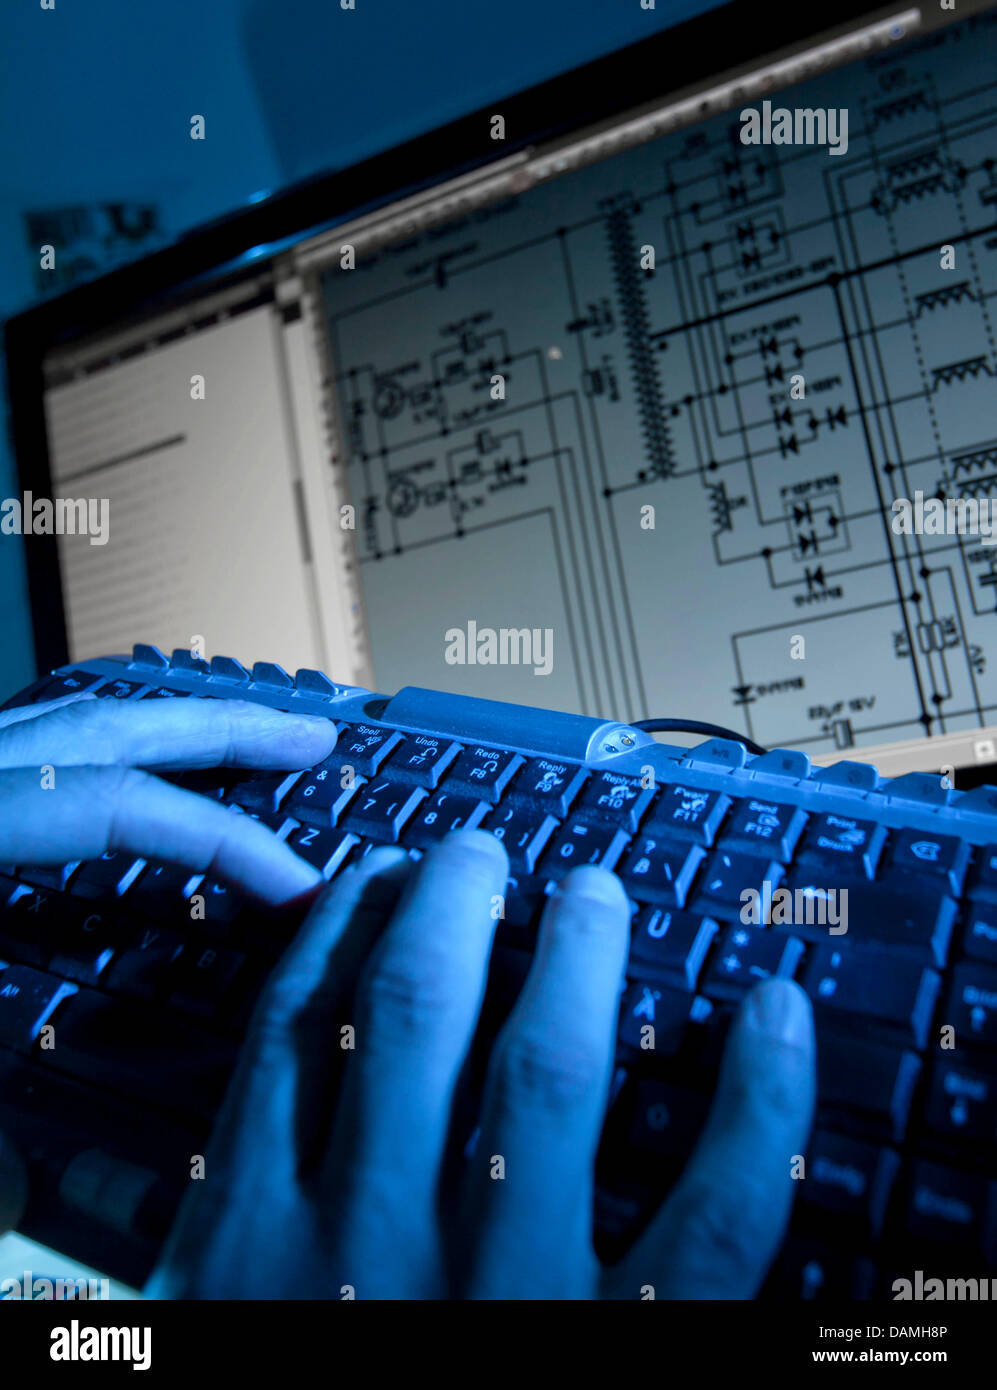 hight resolution of a man uses a keyboard next to a circuit diagram in frankfurt am main germany 16 june 2011 german minister of the interior hans peter friedrich opened the